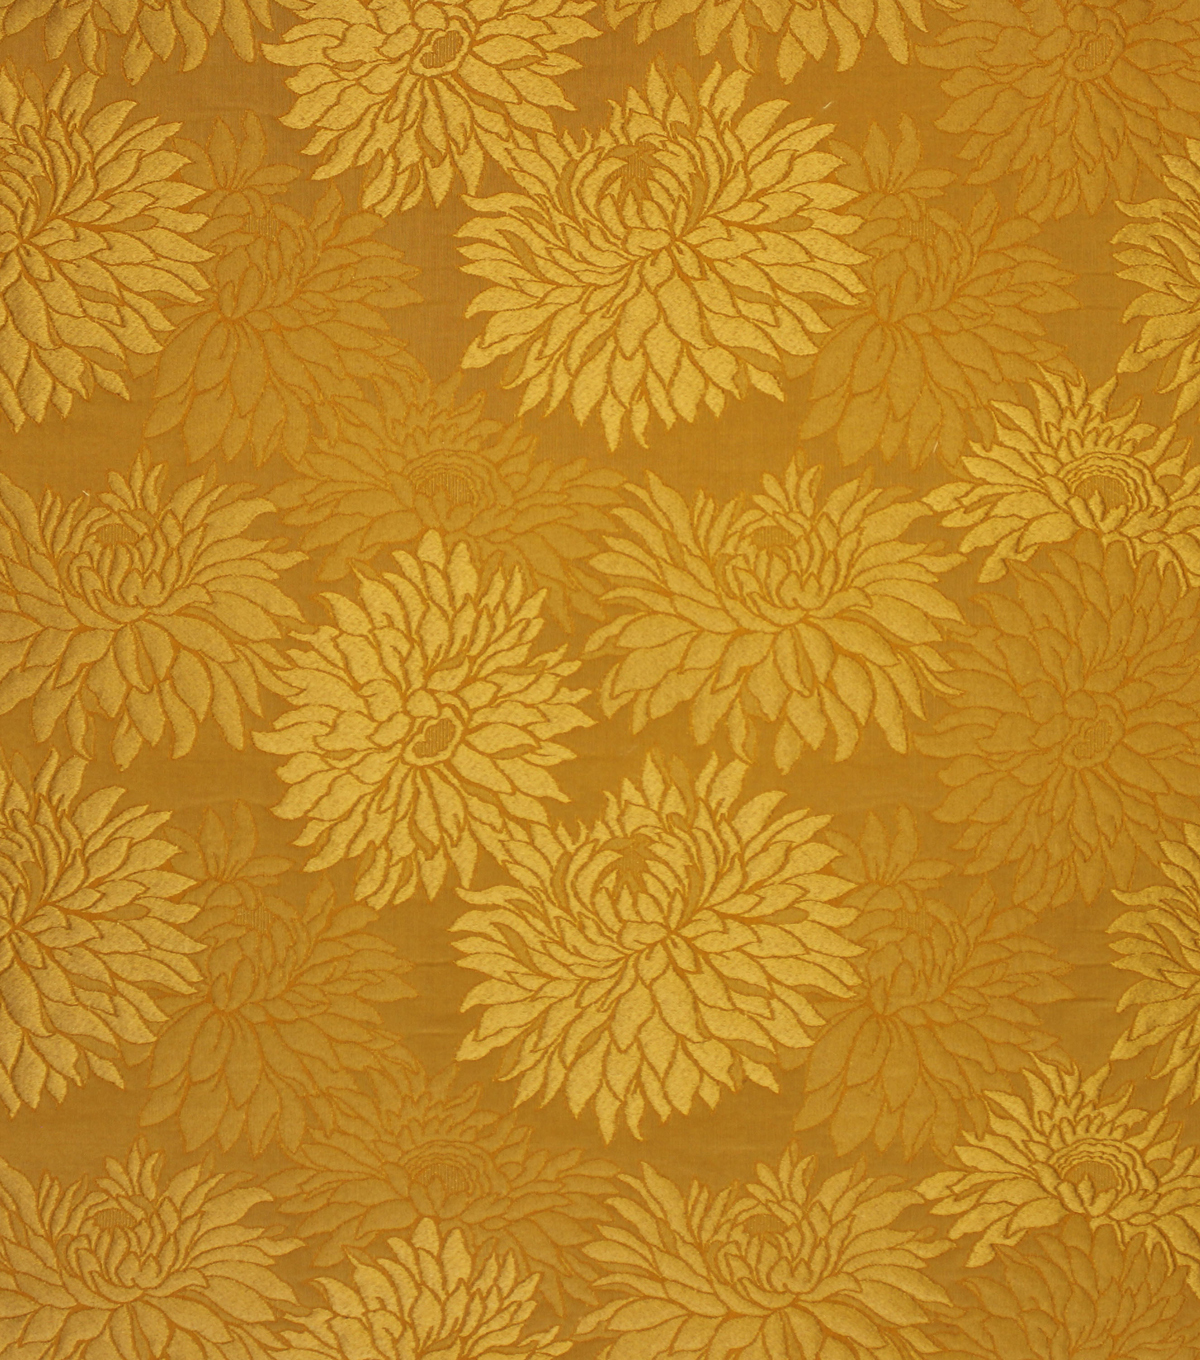 Home Decor 8\u0022x8\u0022 Fabric Swatch-Upholstery Fabric Barrow M8547-5261 Ginger